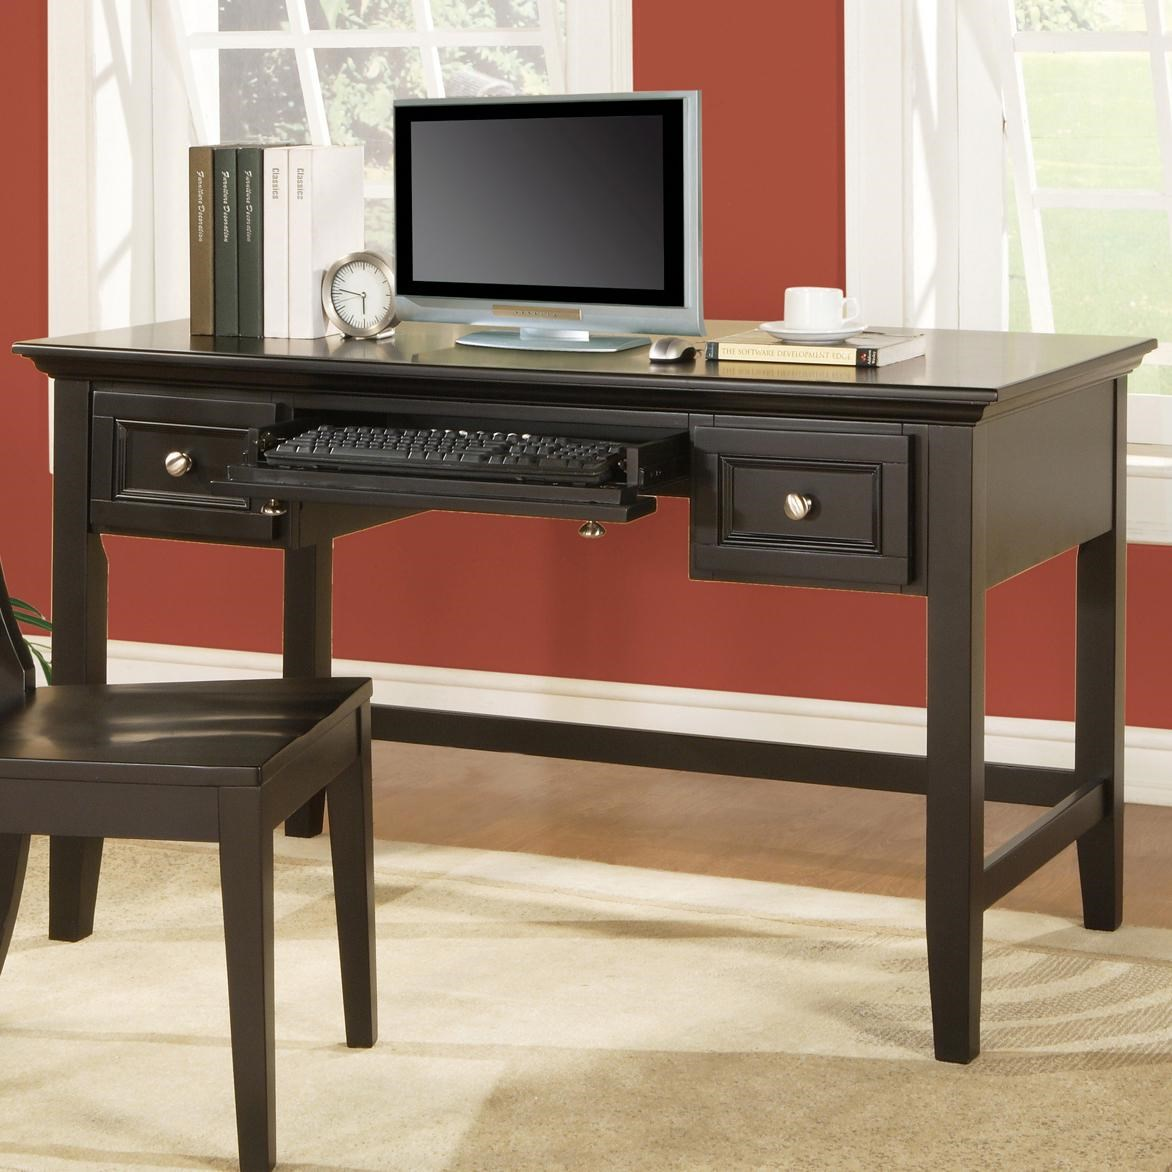 Charmant Star Napier2 Transitional 2 Drawer Writing Desk With Keyboard Tray